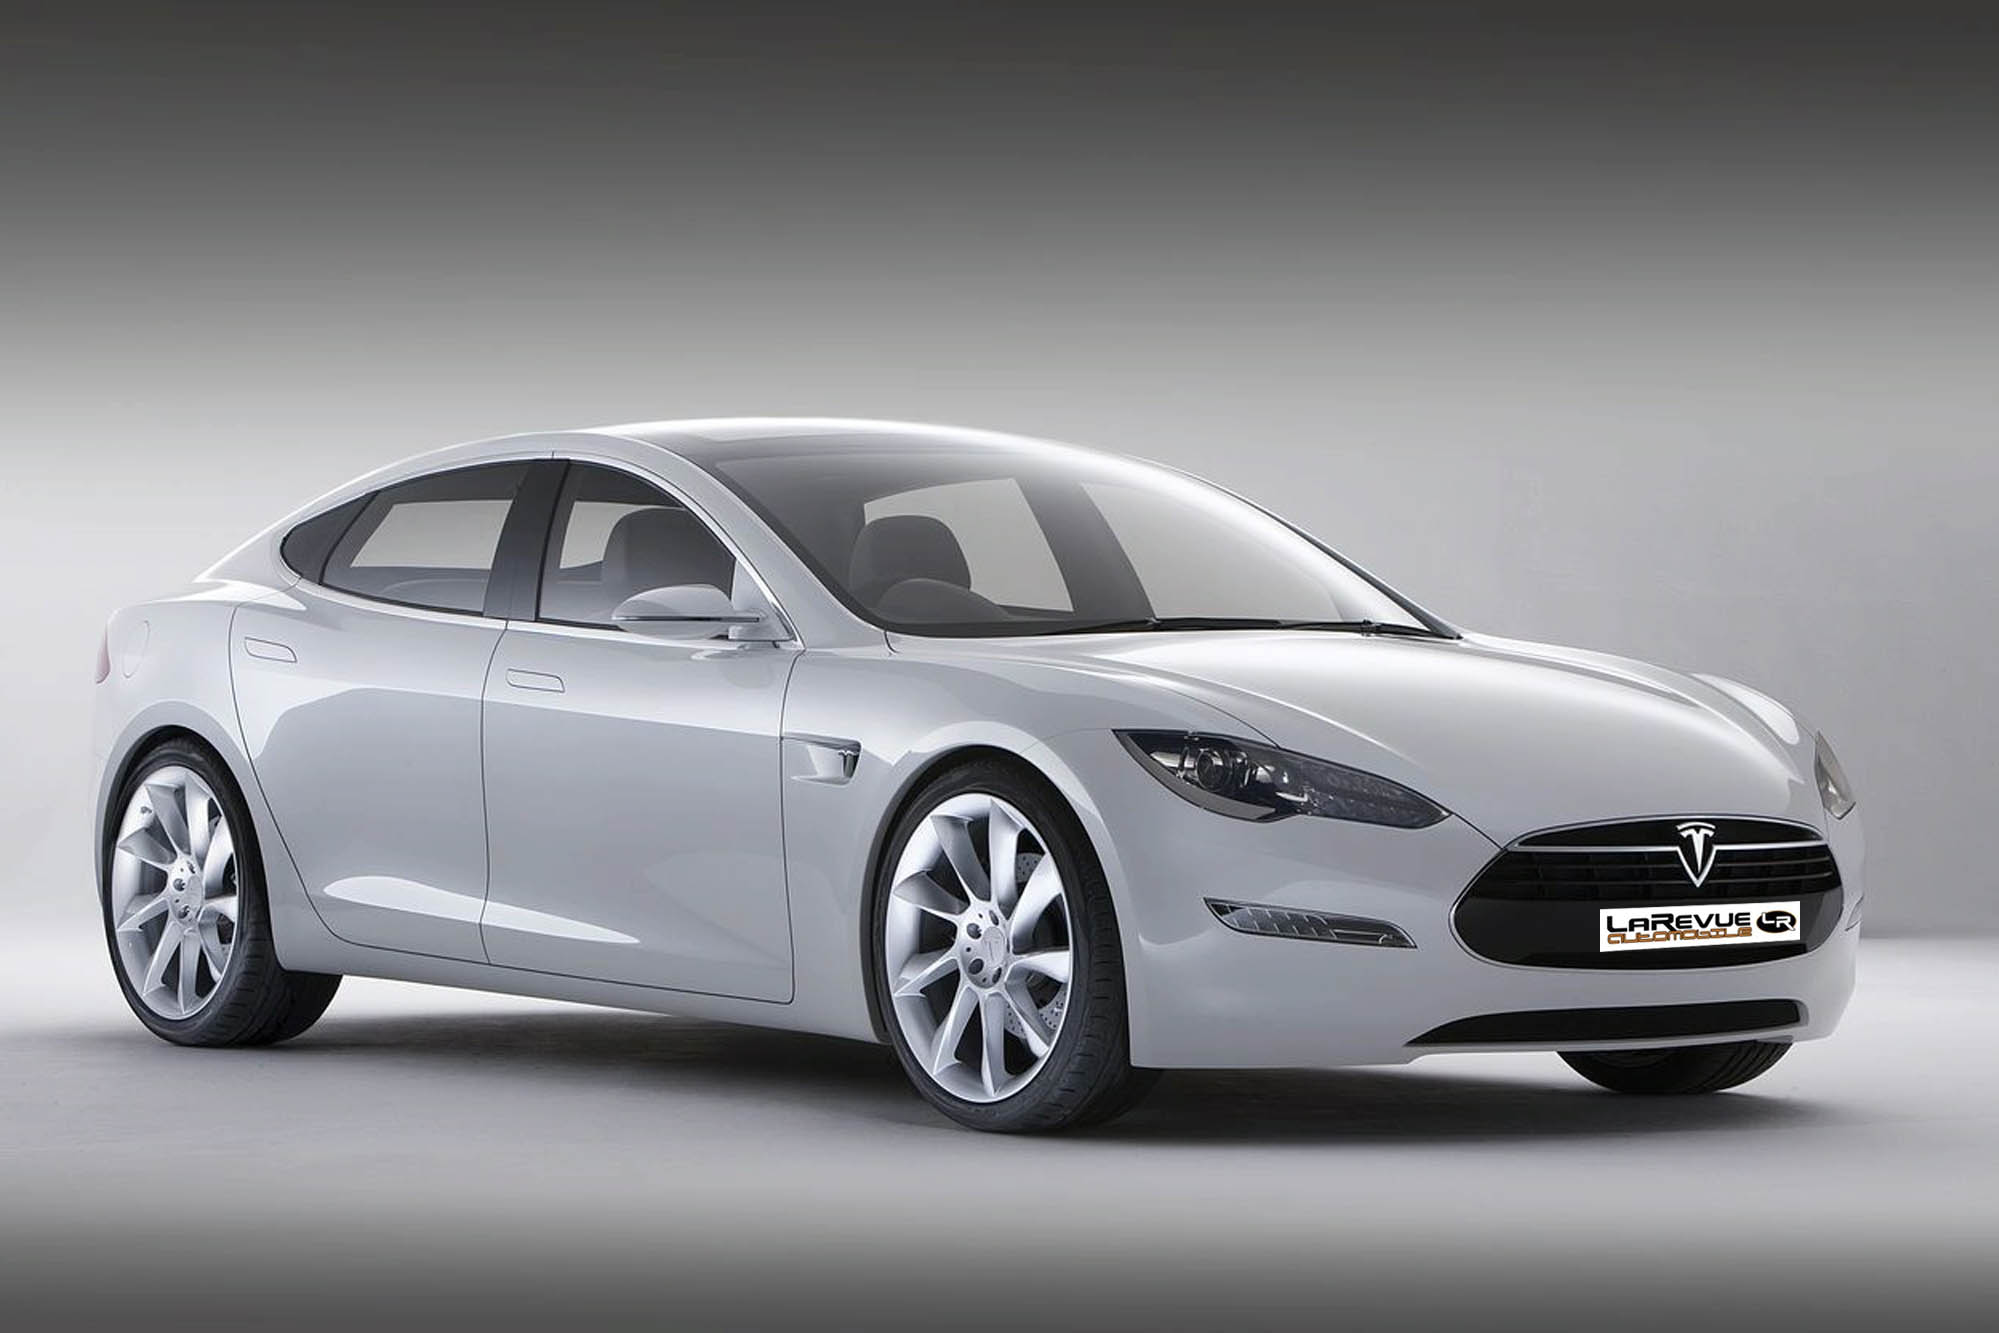 tesla model s electrique voiture electrique. Black Bedroom Furniture Sets. Home Design Ideas